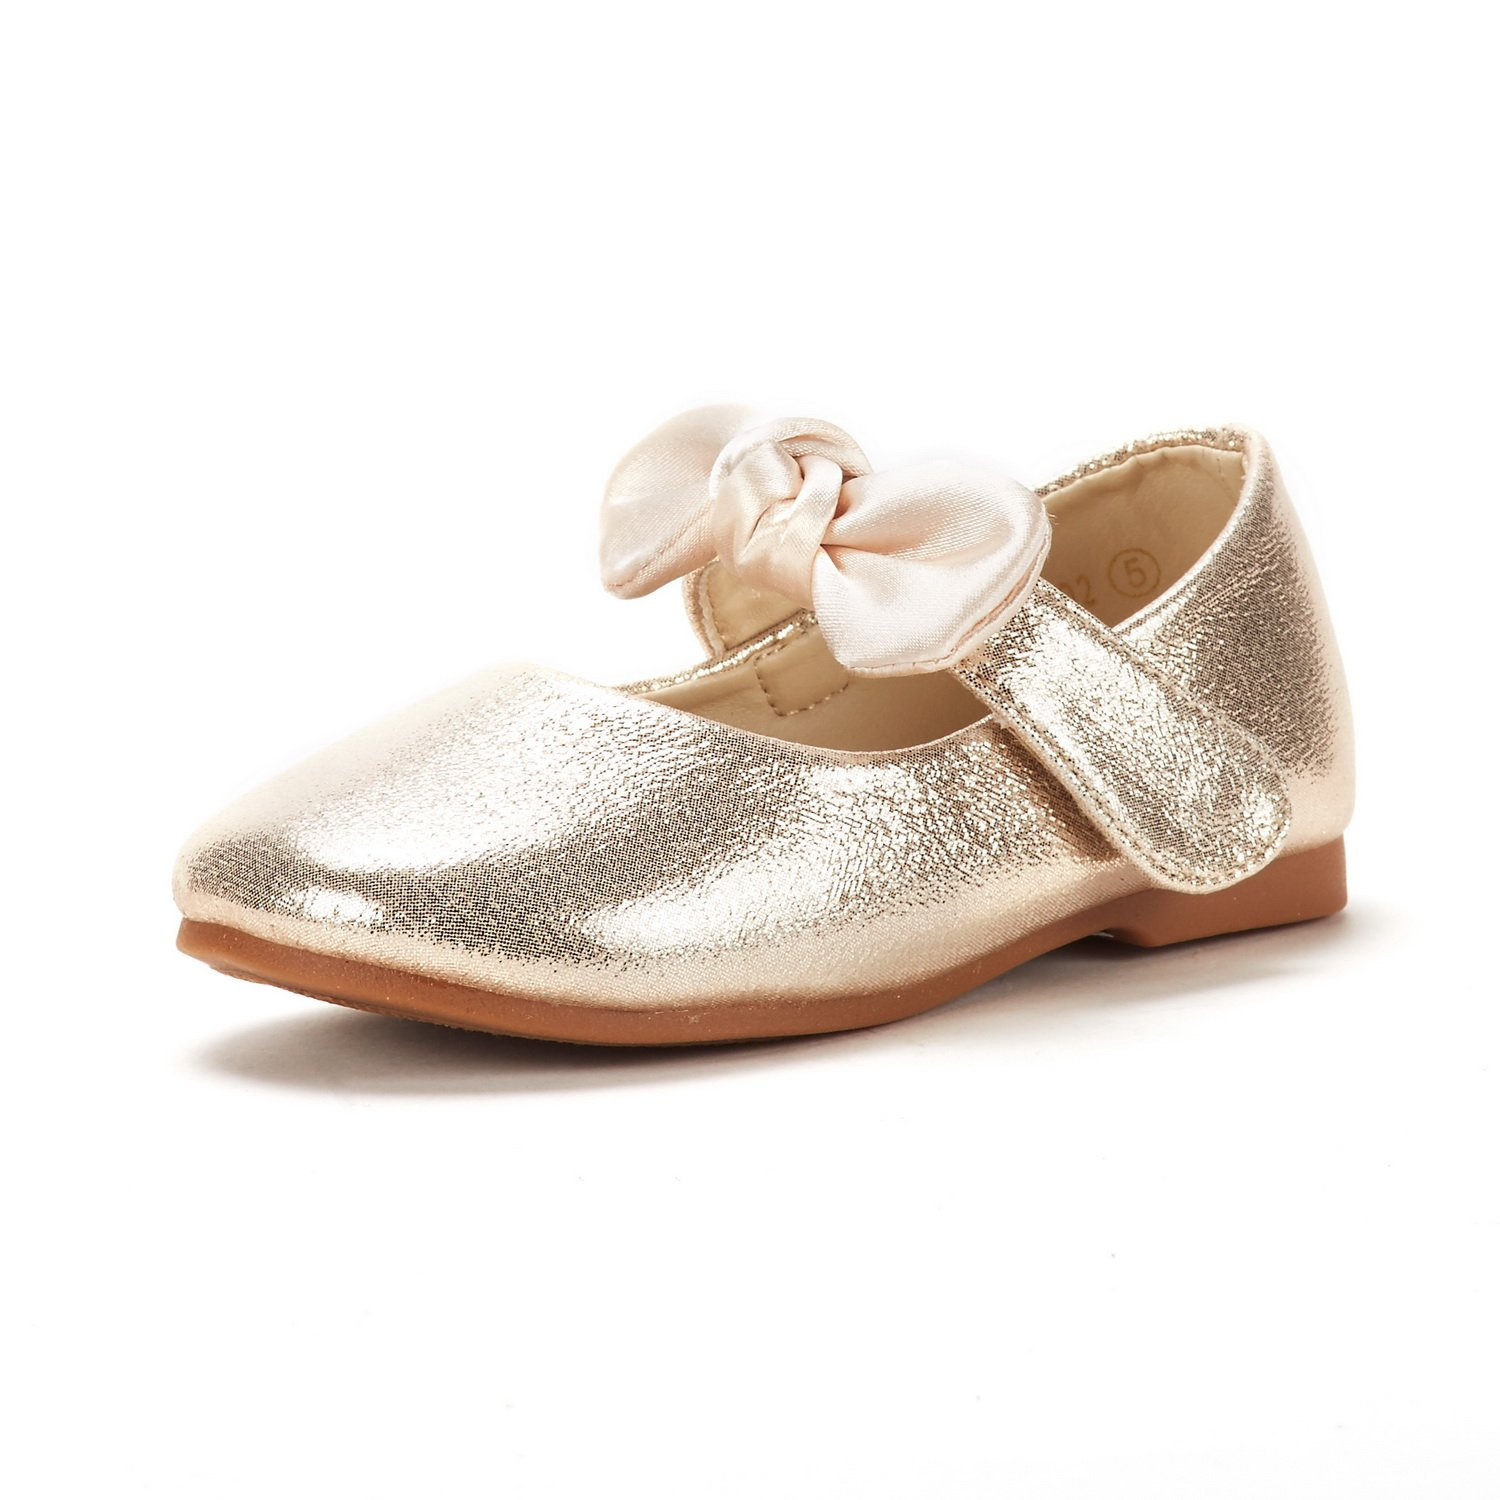 DREAM PAIRS Toddler Belle_02 Gold Girl's Mary Jane Ballerina Flat Shoes Size 5 M US Toddler